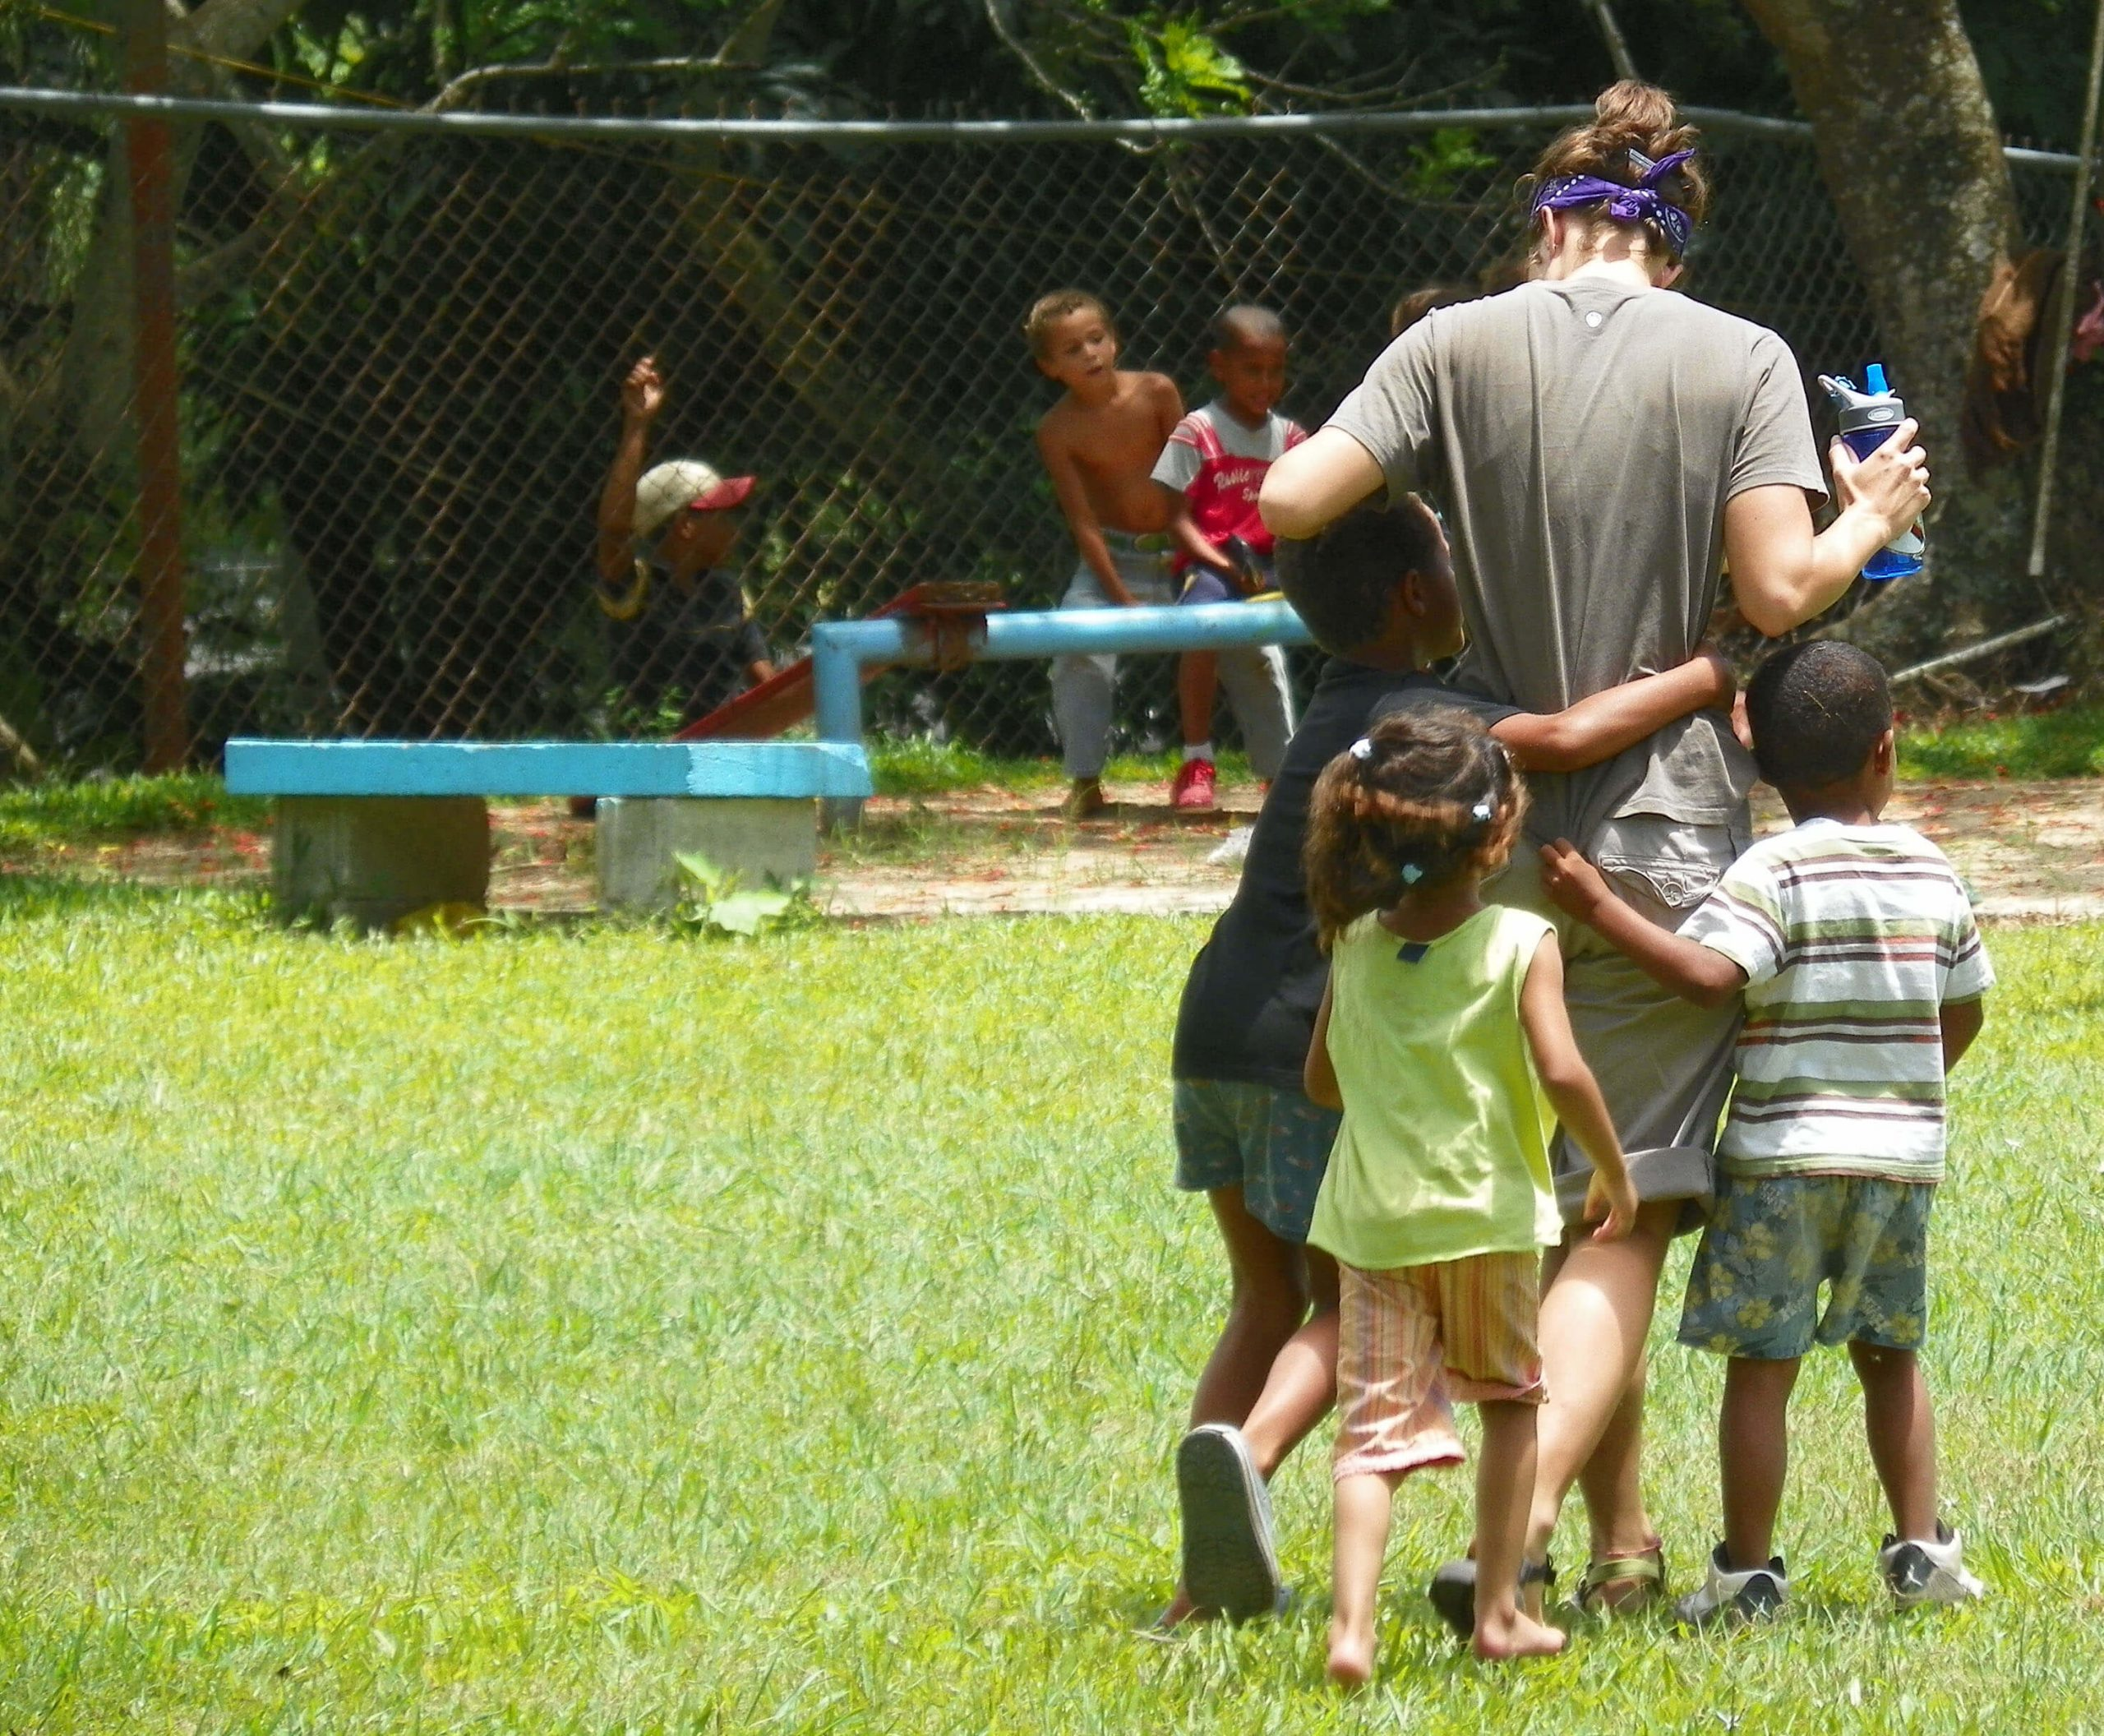 The overarching purpose of the mission trip sponsored by Christ Church (Valdosta) to El Pedregal in June, 2011, was to establish a ministry of presence.